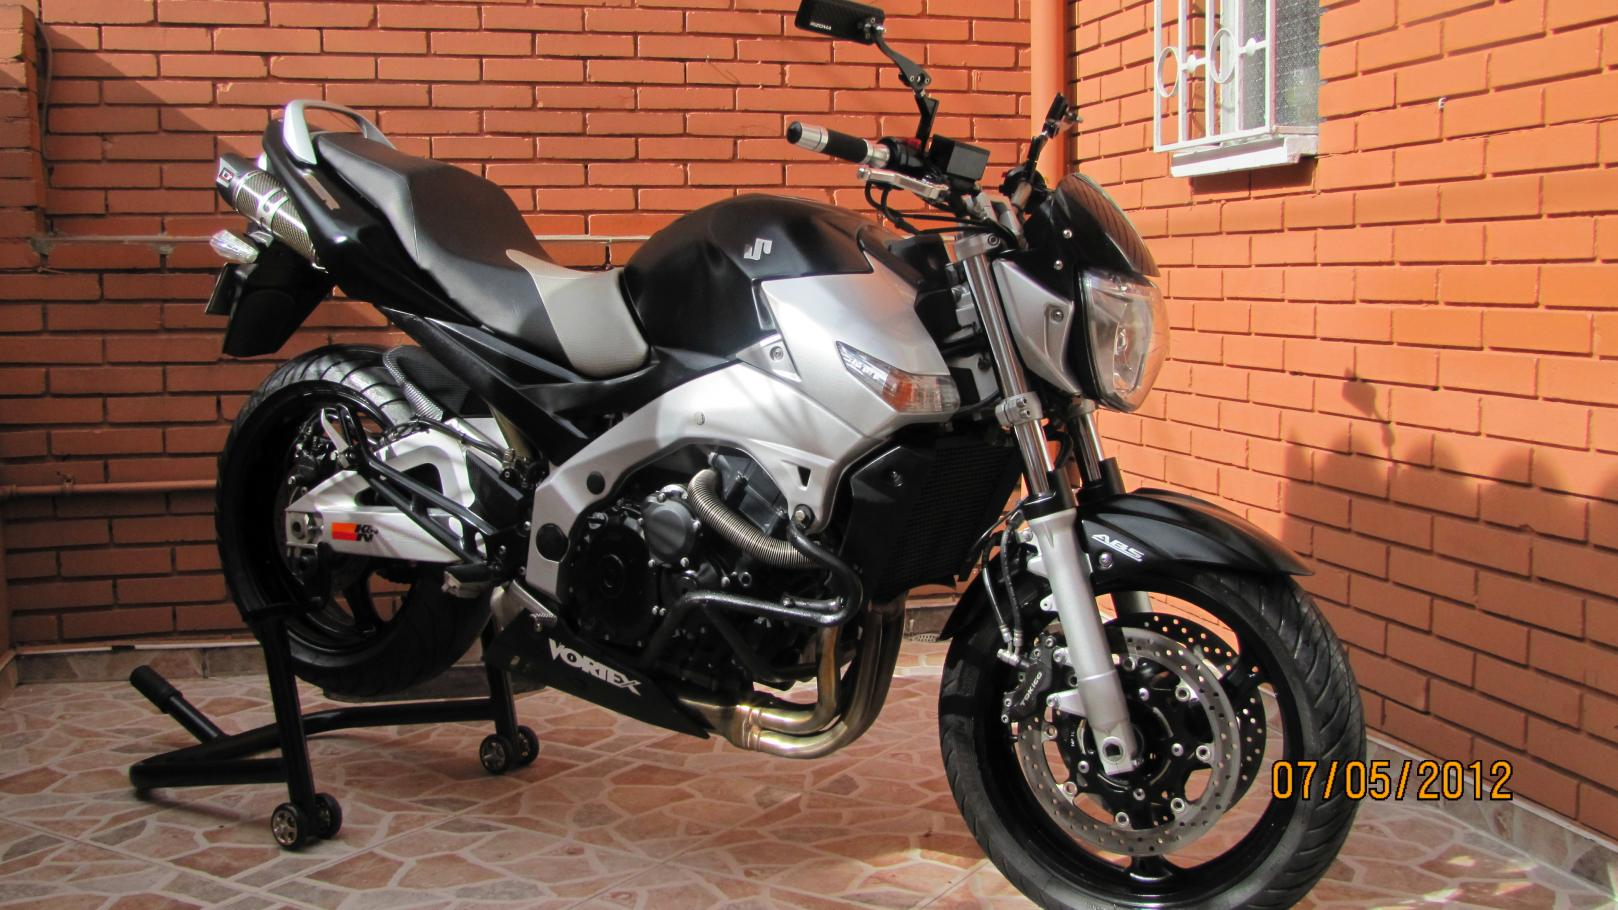 suzuki gsr 600 abs pics specs and list of seriess by year. Black Bedroom Furniture Sets. Home Design Ideas